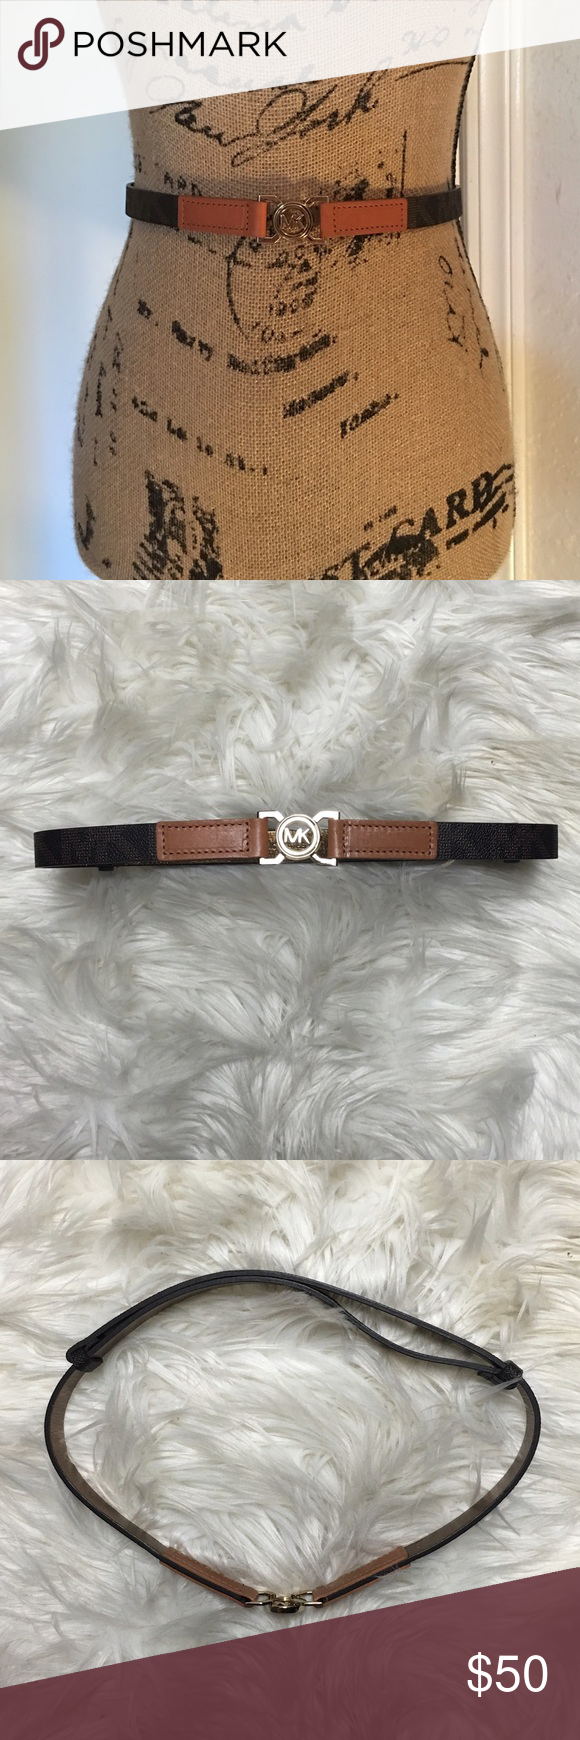 Michael Kors belt Michael Kors belt. This belt hooks in the front and is adjustable, see back of belt. Easy to use and comfortable to wear. Worn one time. And in perfect condition. MICHAEL Michael Kors Accessories Belts